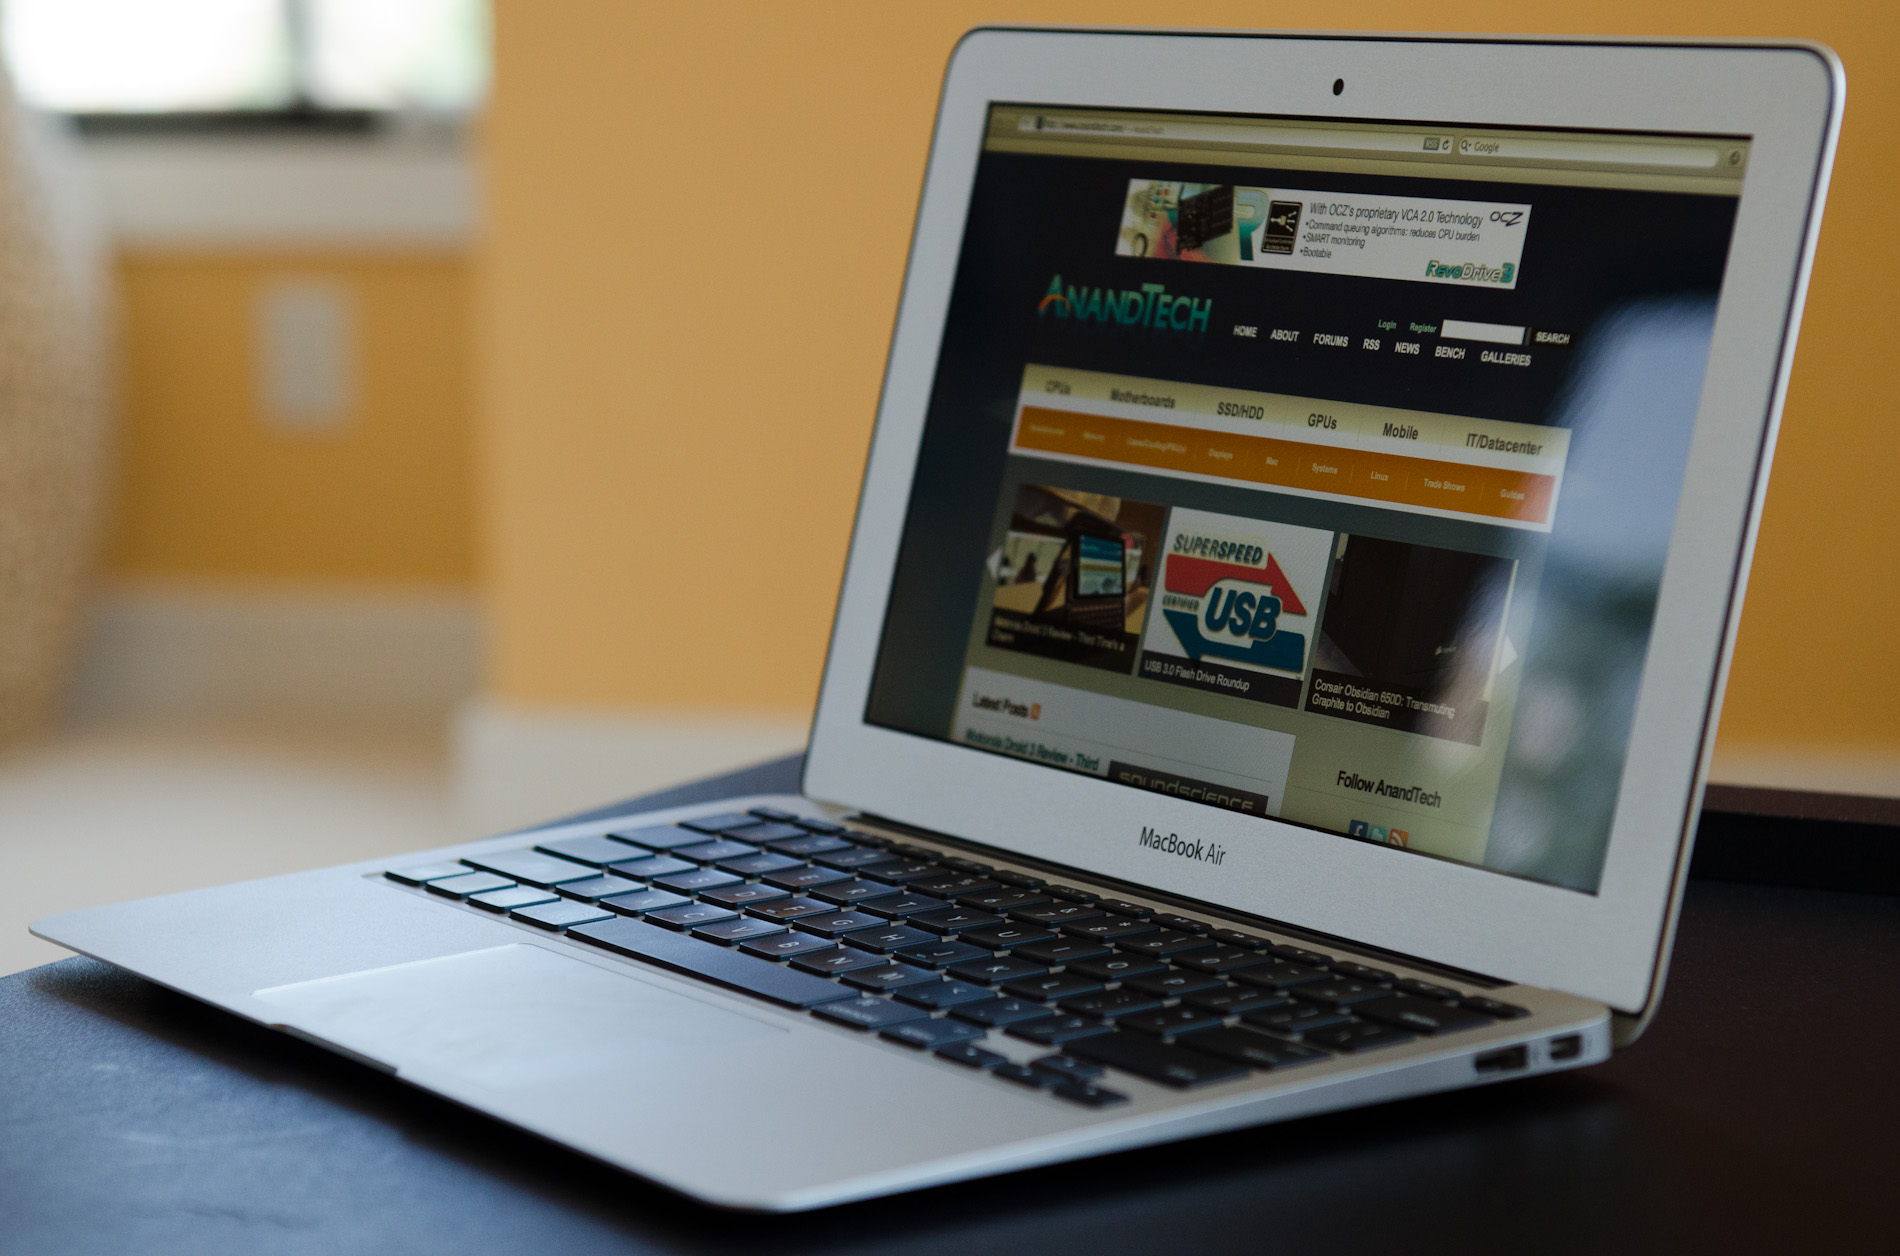 Battery Life - Apple's 11-inch MacBook Air (Core i7 1 8GHz